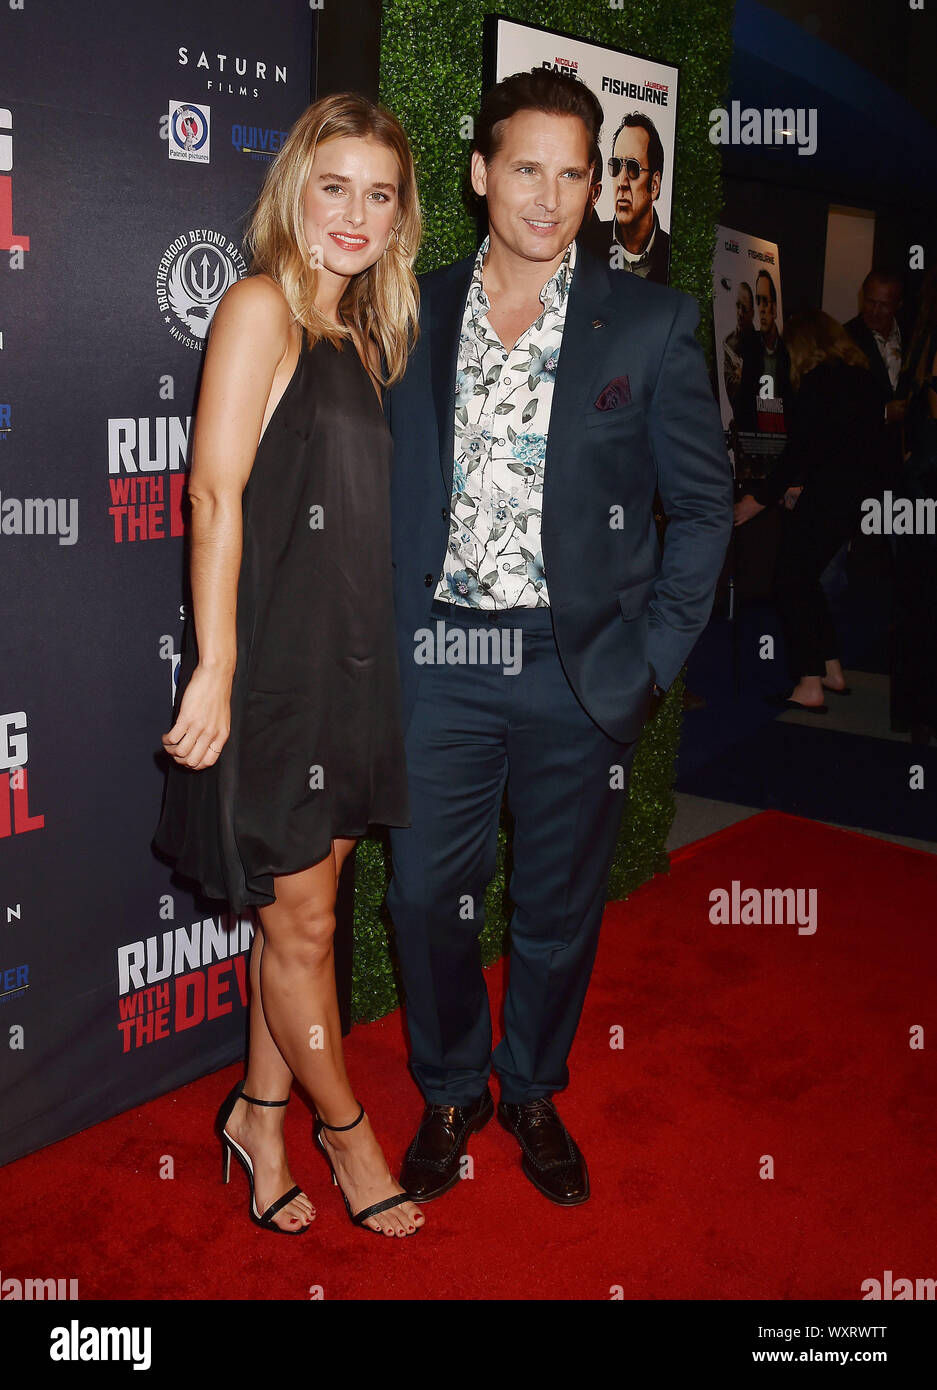 """BEVERLY HILLS, CA - SEPTEMBER 16: Lily Anne Harrison (L) and Peter Facinelli attend the Premiere Of Quiver Distribution's """"Running With The Devil"""" at Writers Guild Theater on September 16, 2019 in Beverly Hills, California. Stock Photo"""